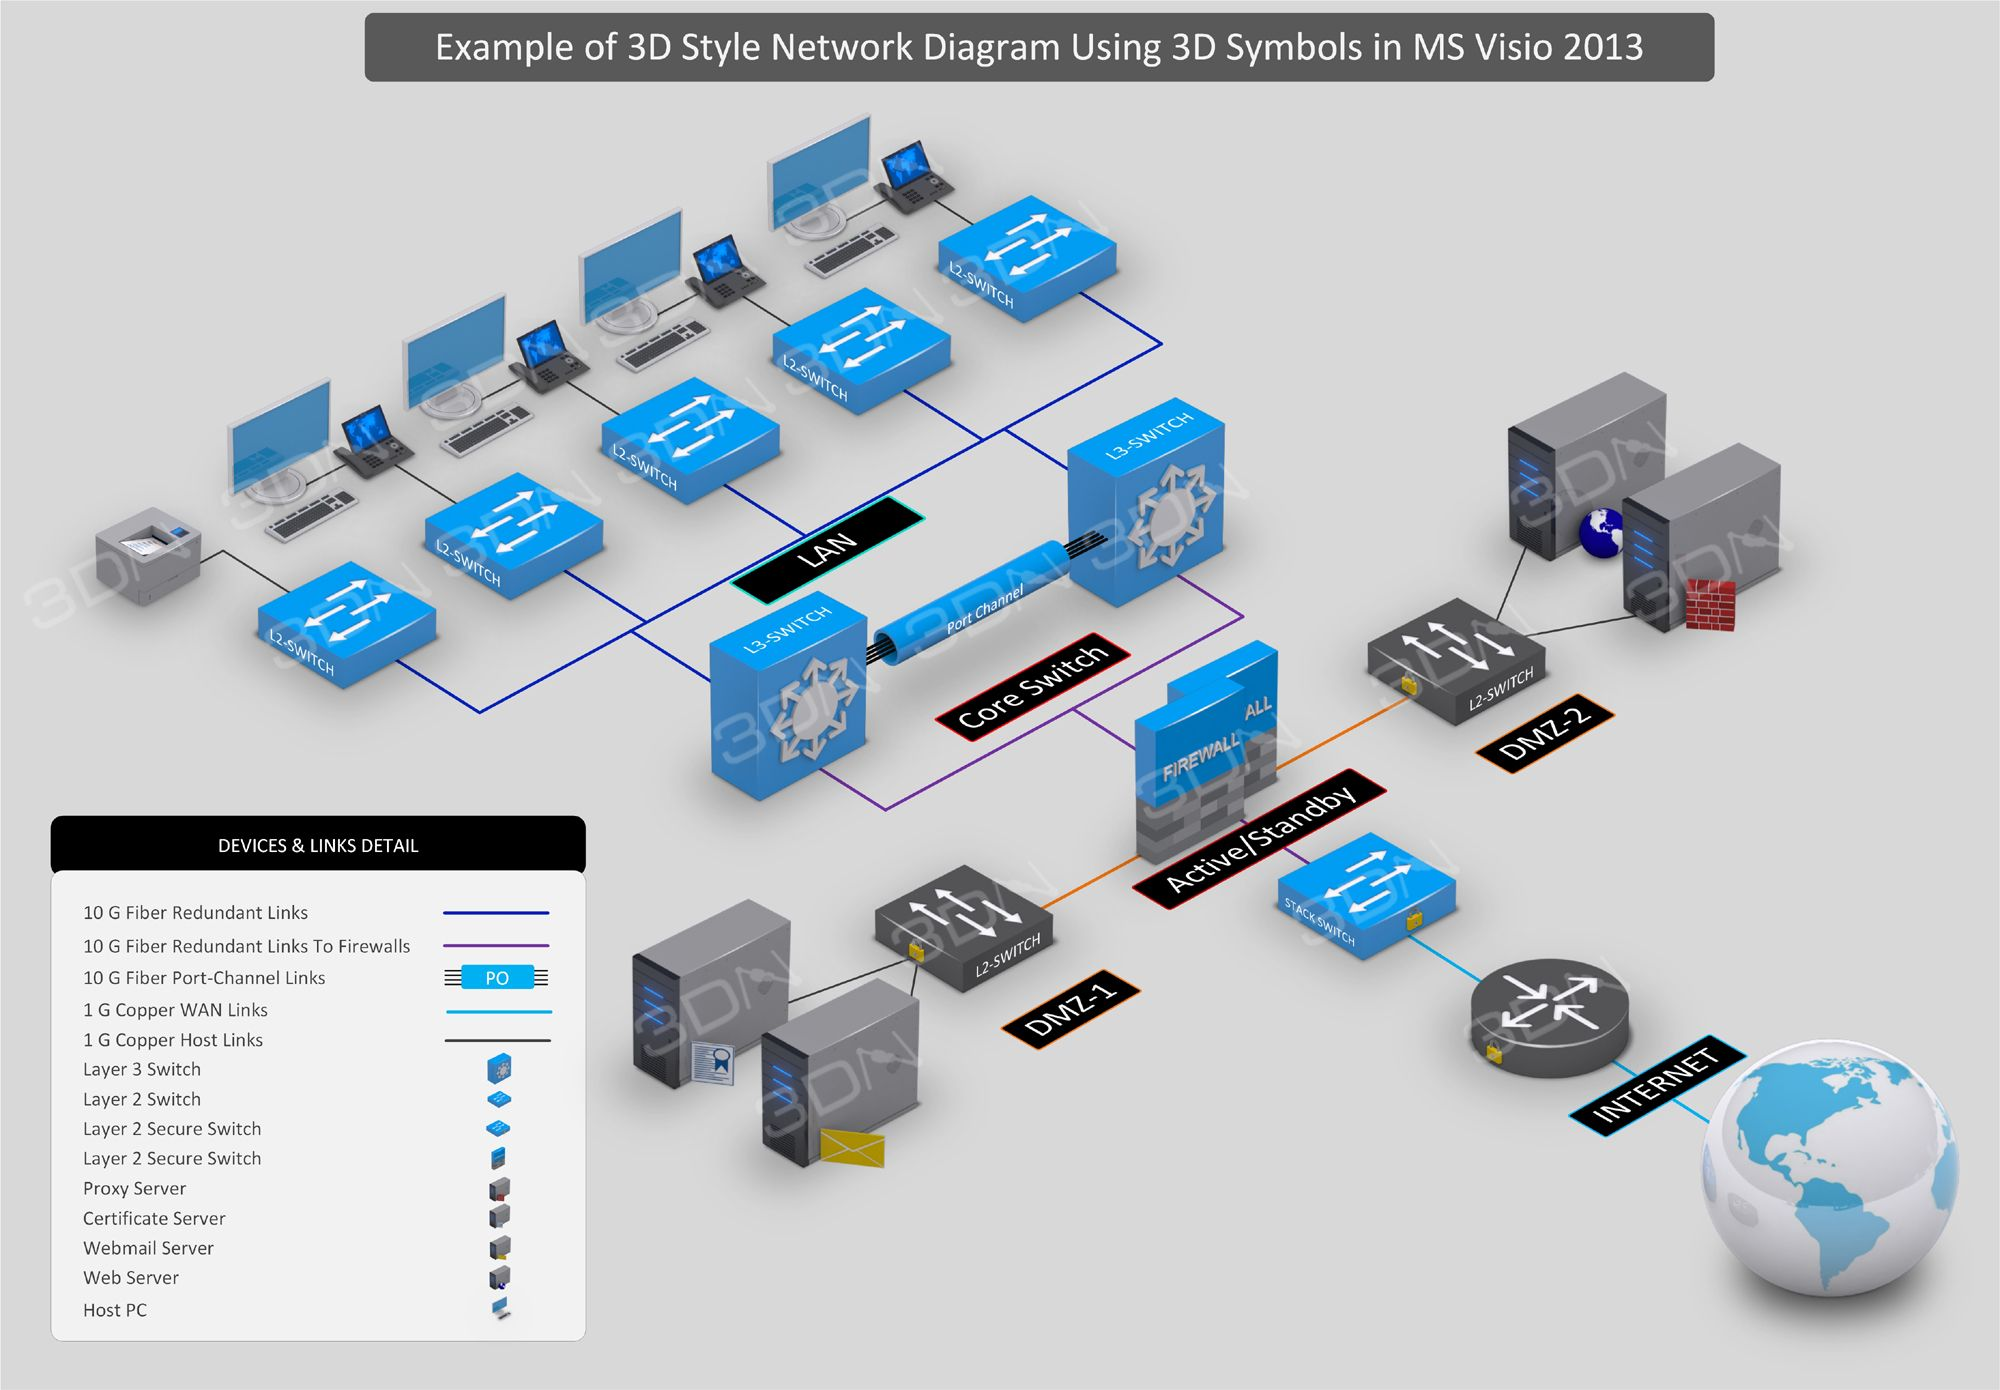 3D Network Diagram | 3D Network Diagram with 3D Network Symbols ...